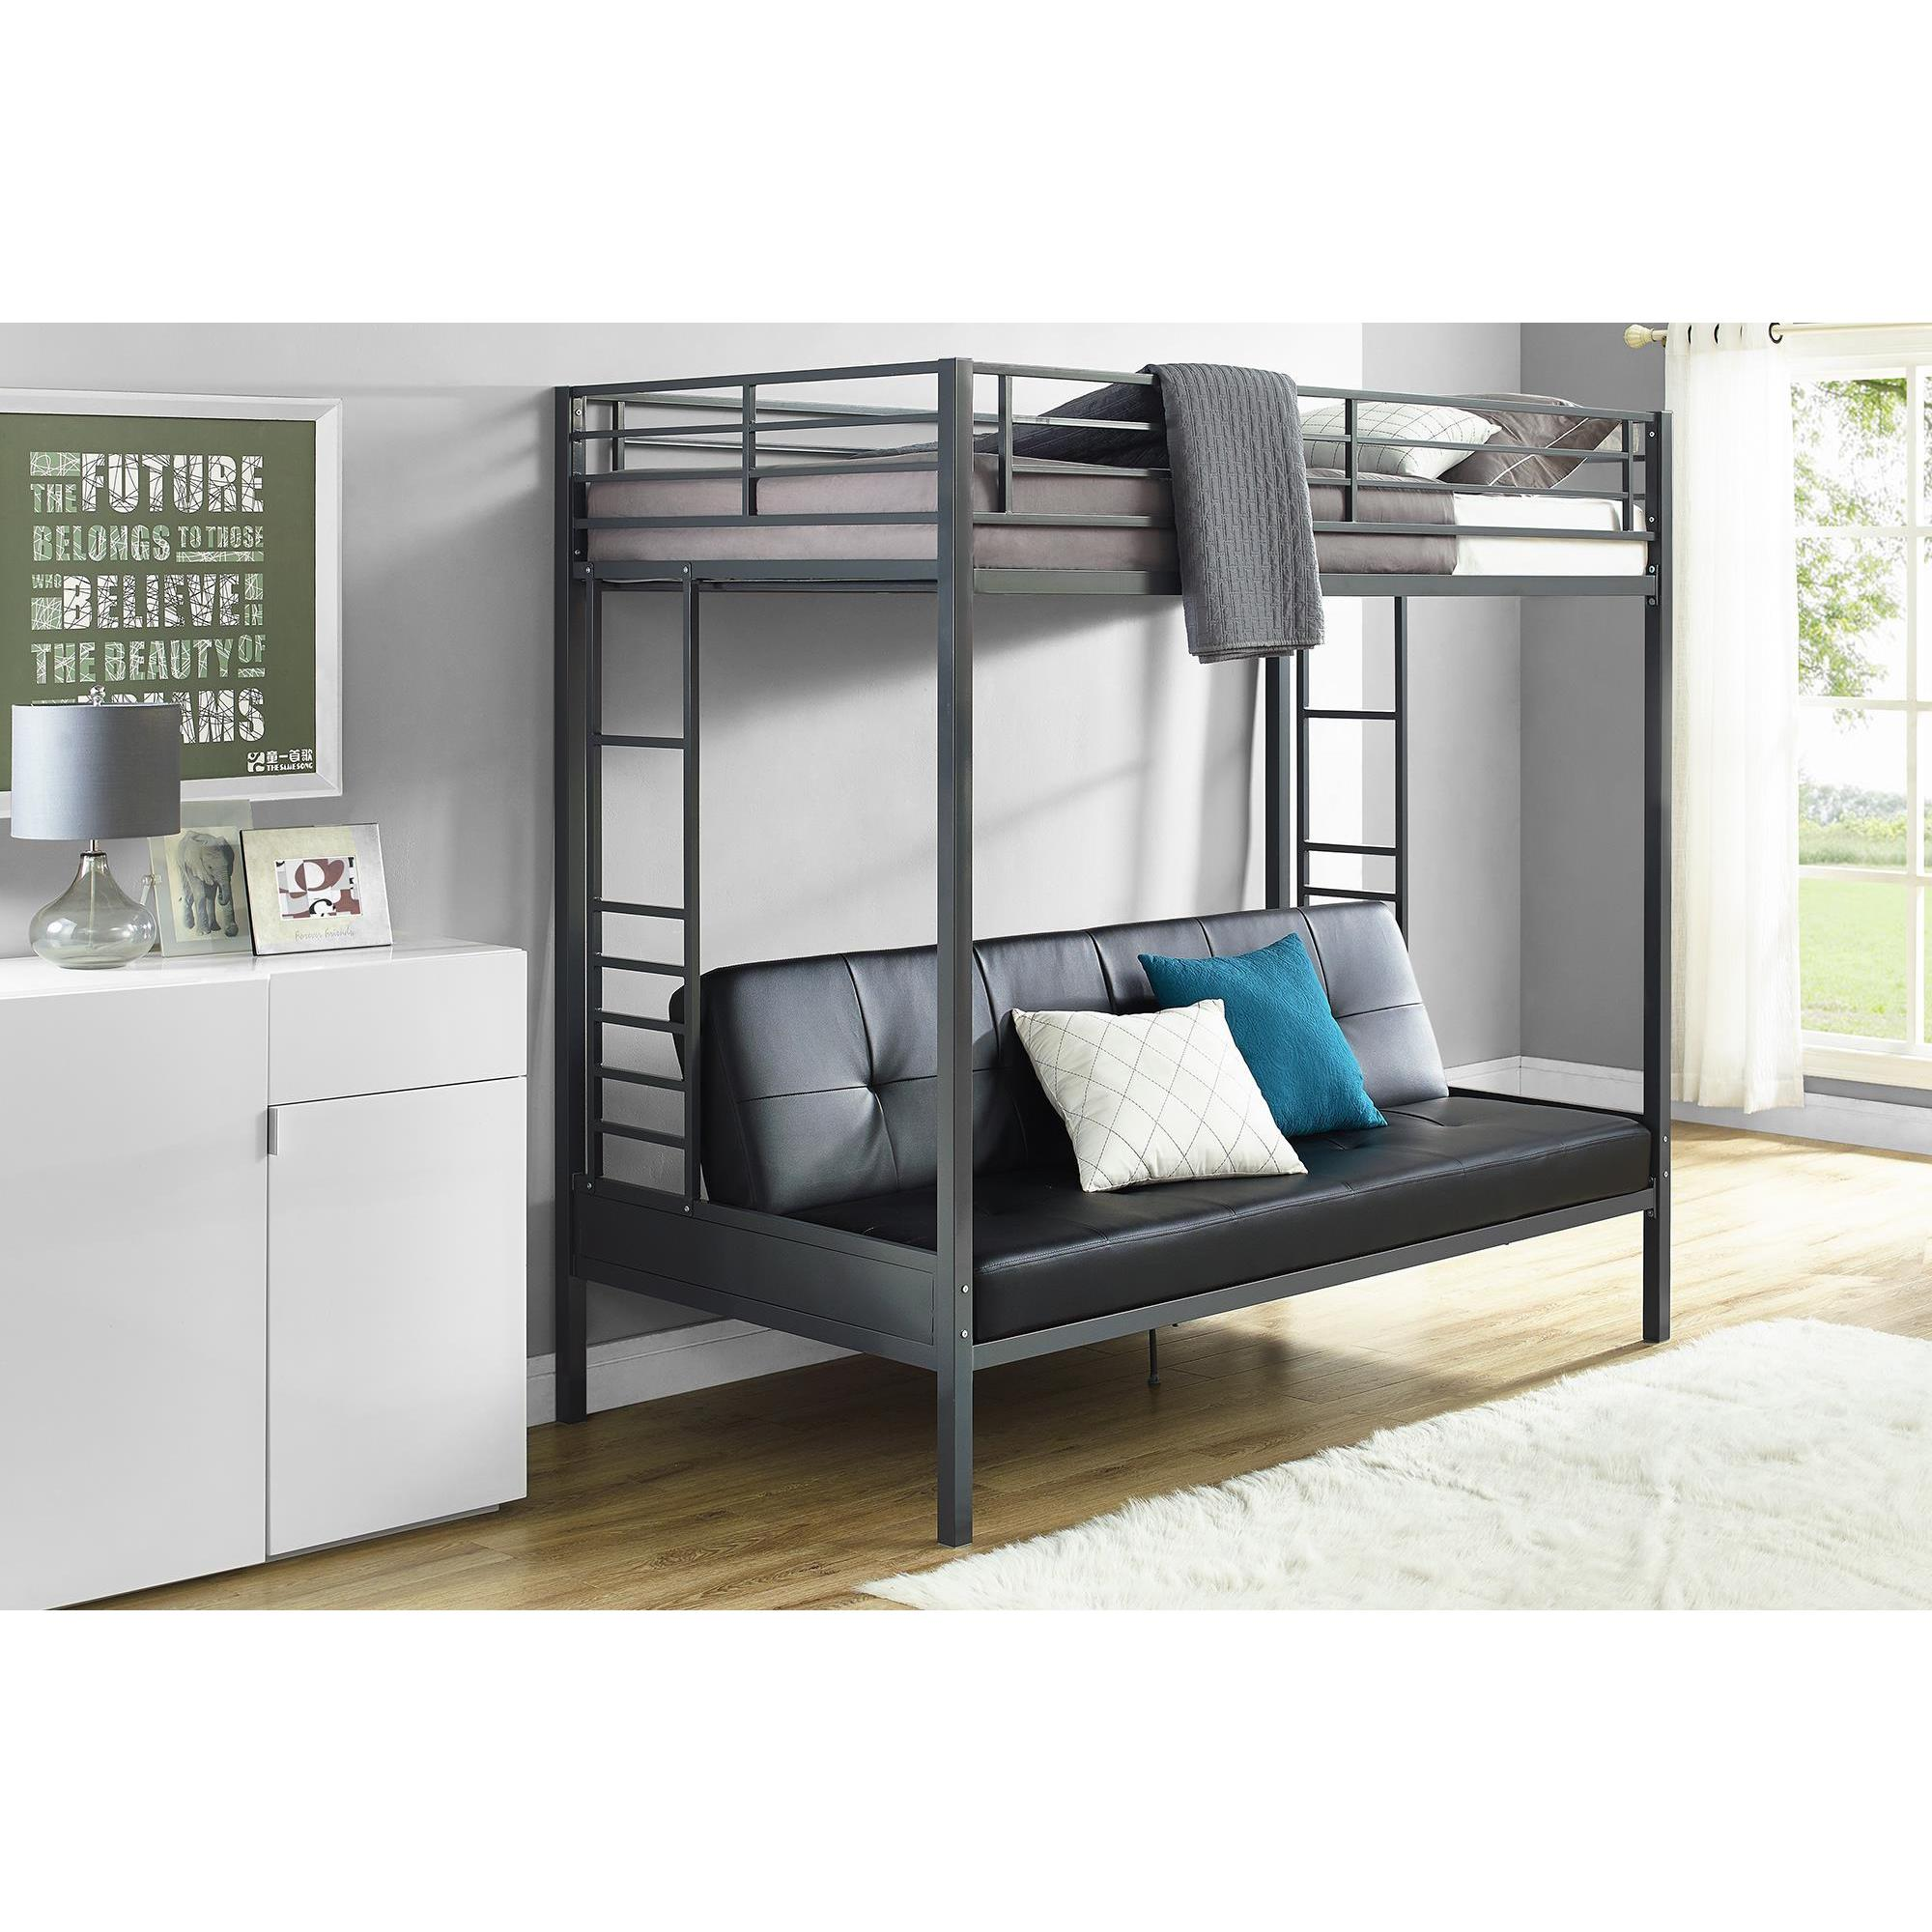 trundle bed for pull cool kids full out bunk included converts beds to size couch with futon mattress loft